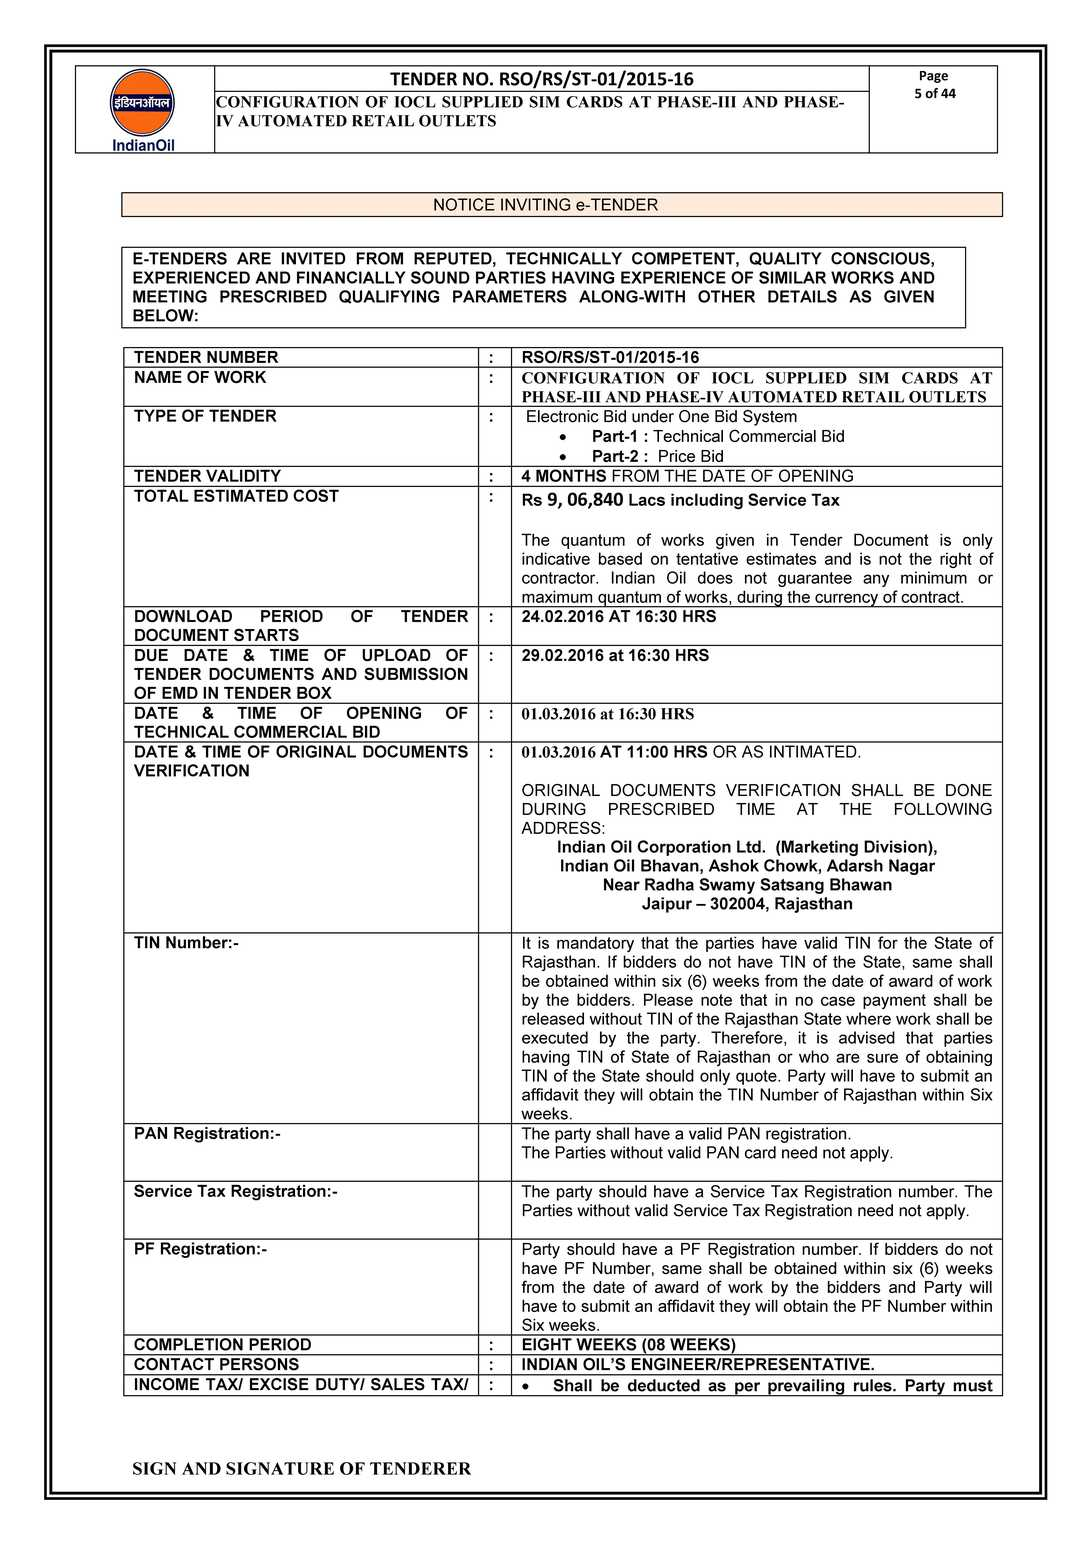 Iocl india tenders